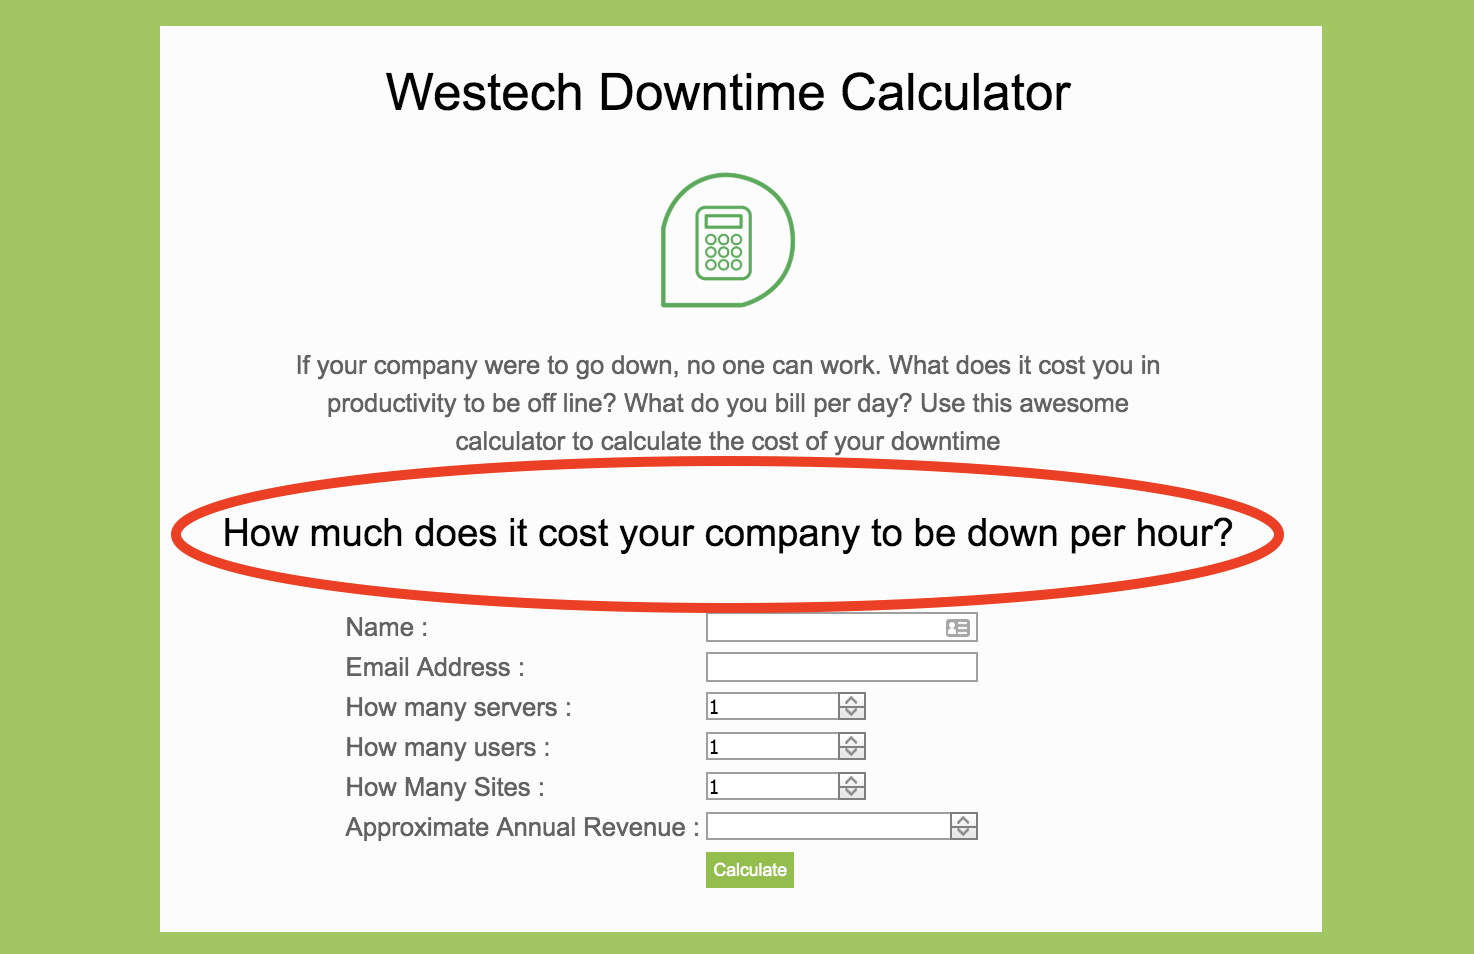 westechs it downtime calculator